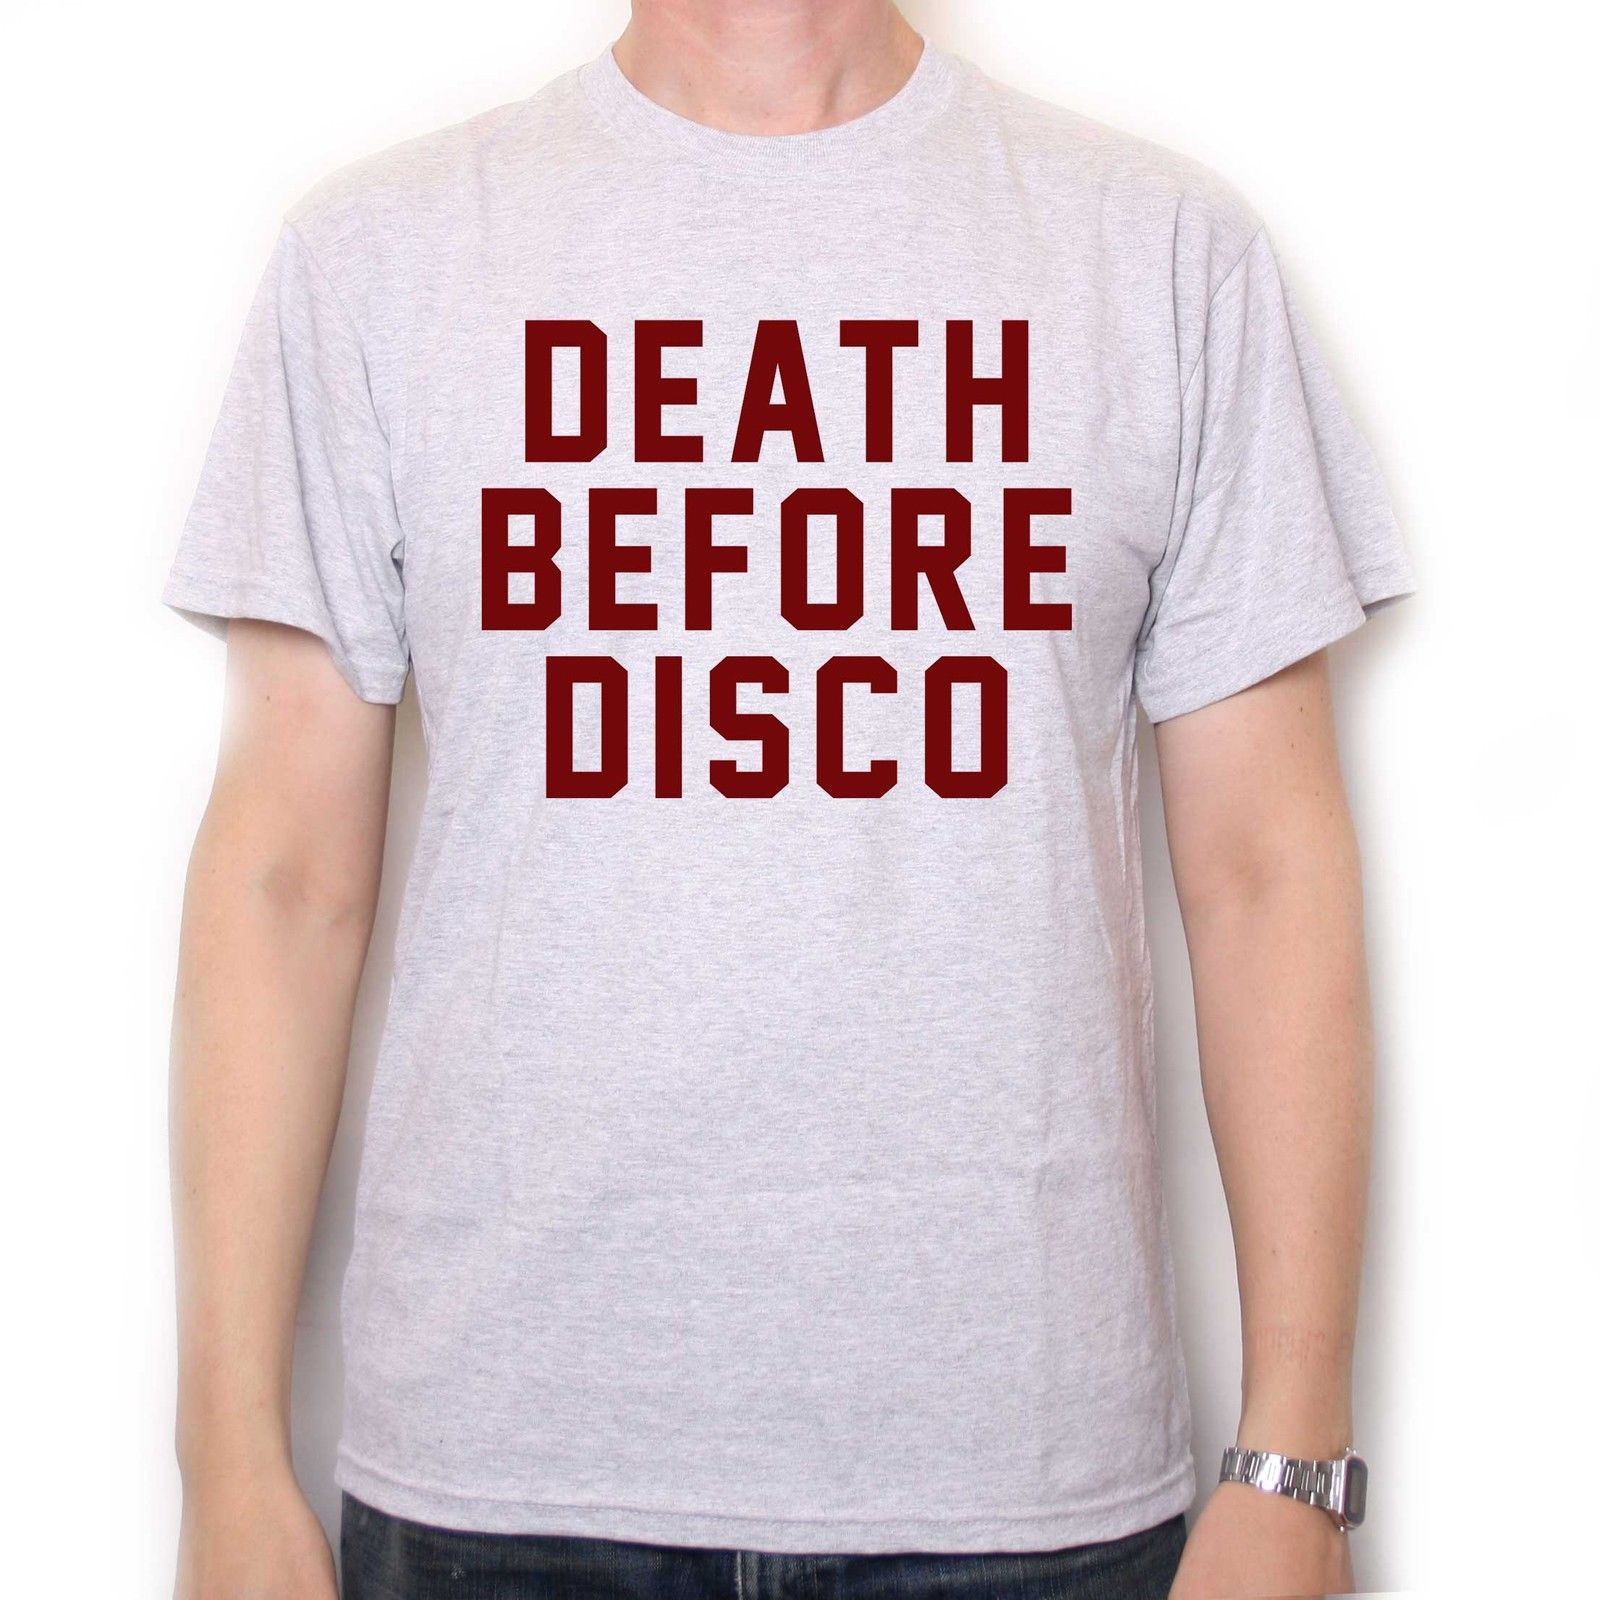 Death Before Disco T Shirt As Worn By Judge Reinhold In Stripes Cult Film Movie Fashion Style Men Tee,custom printed tshirt